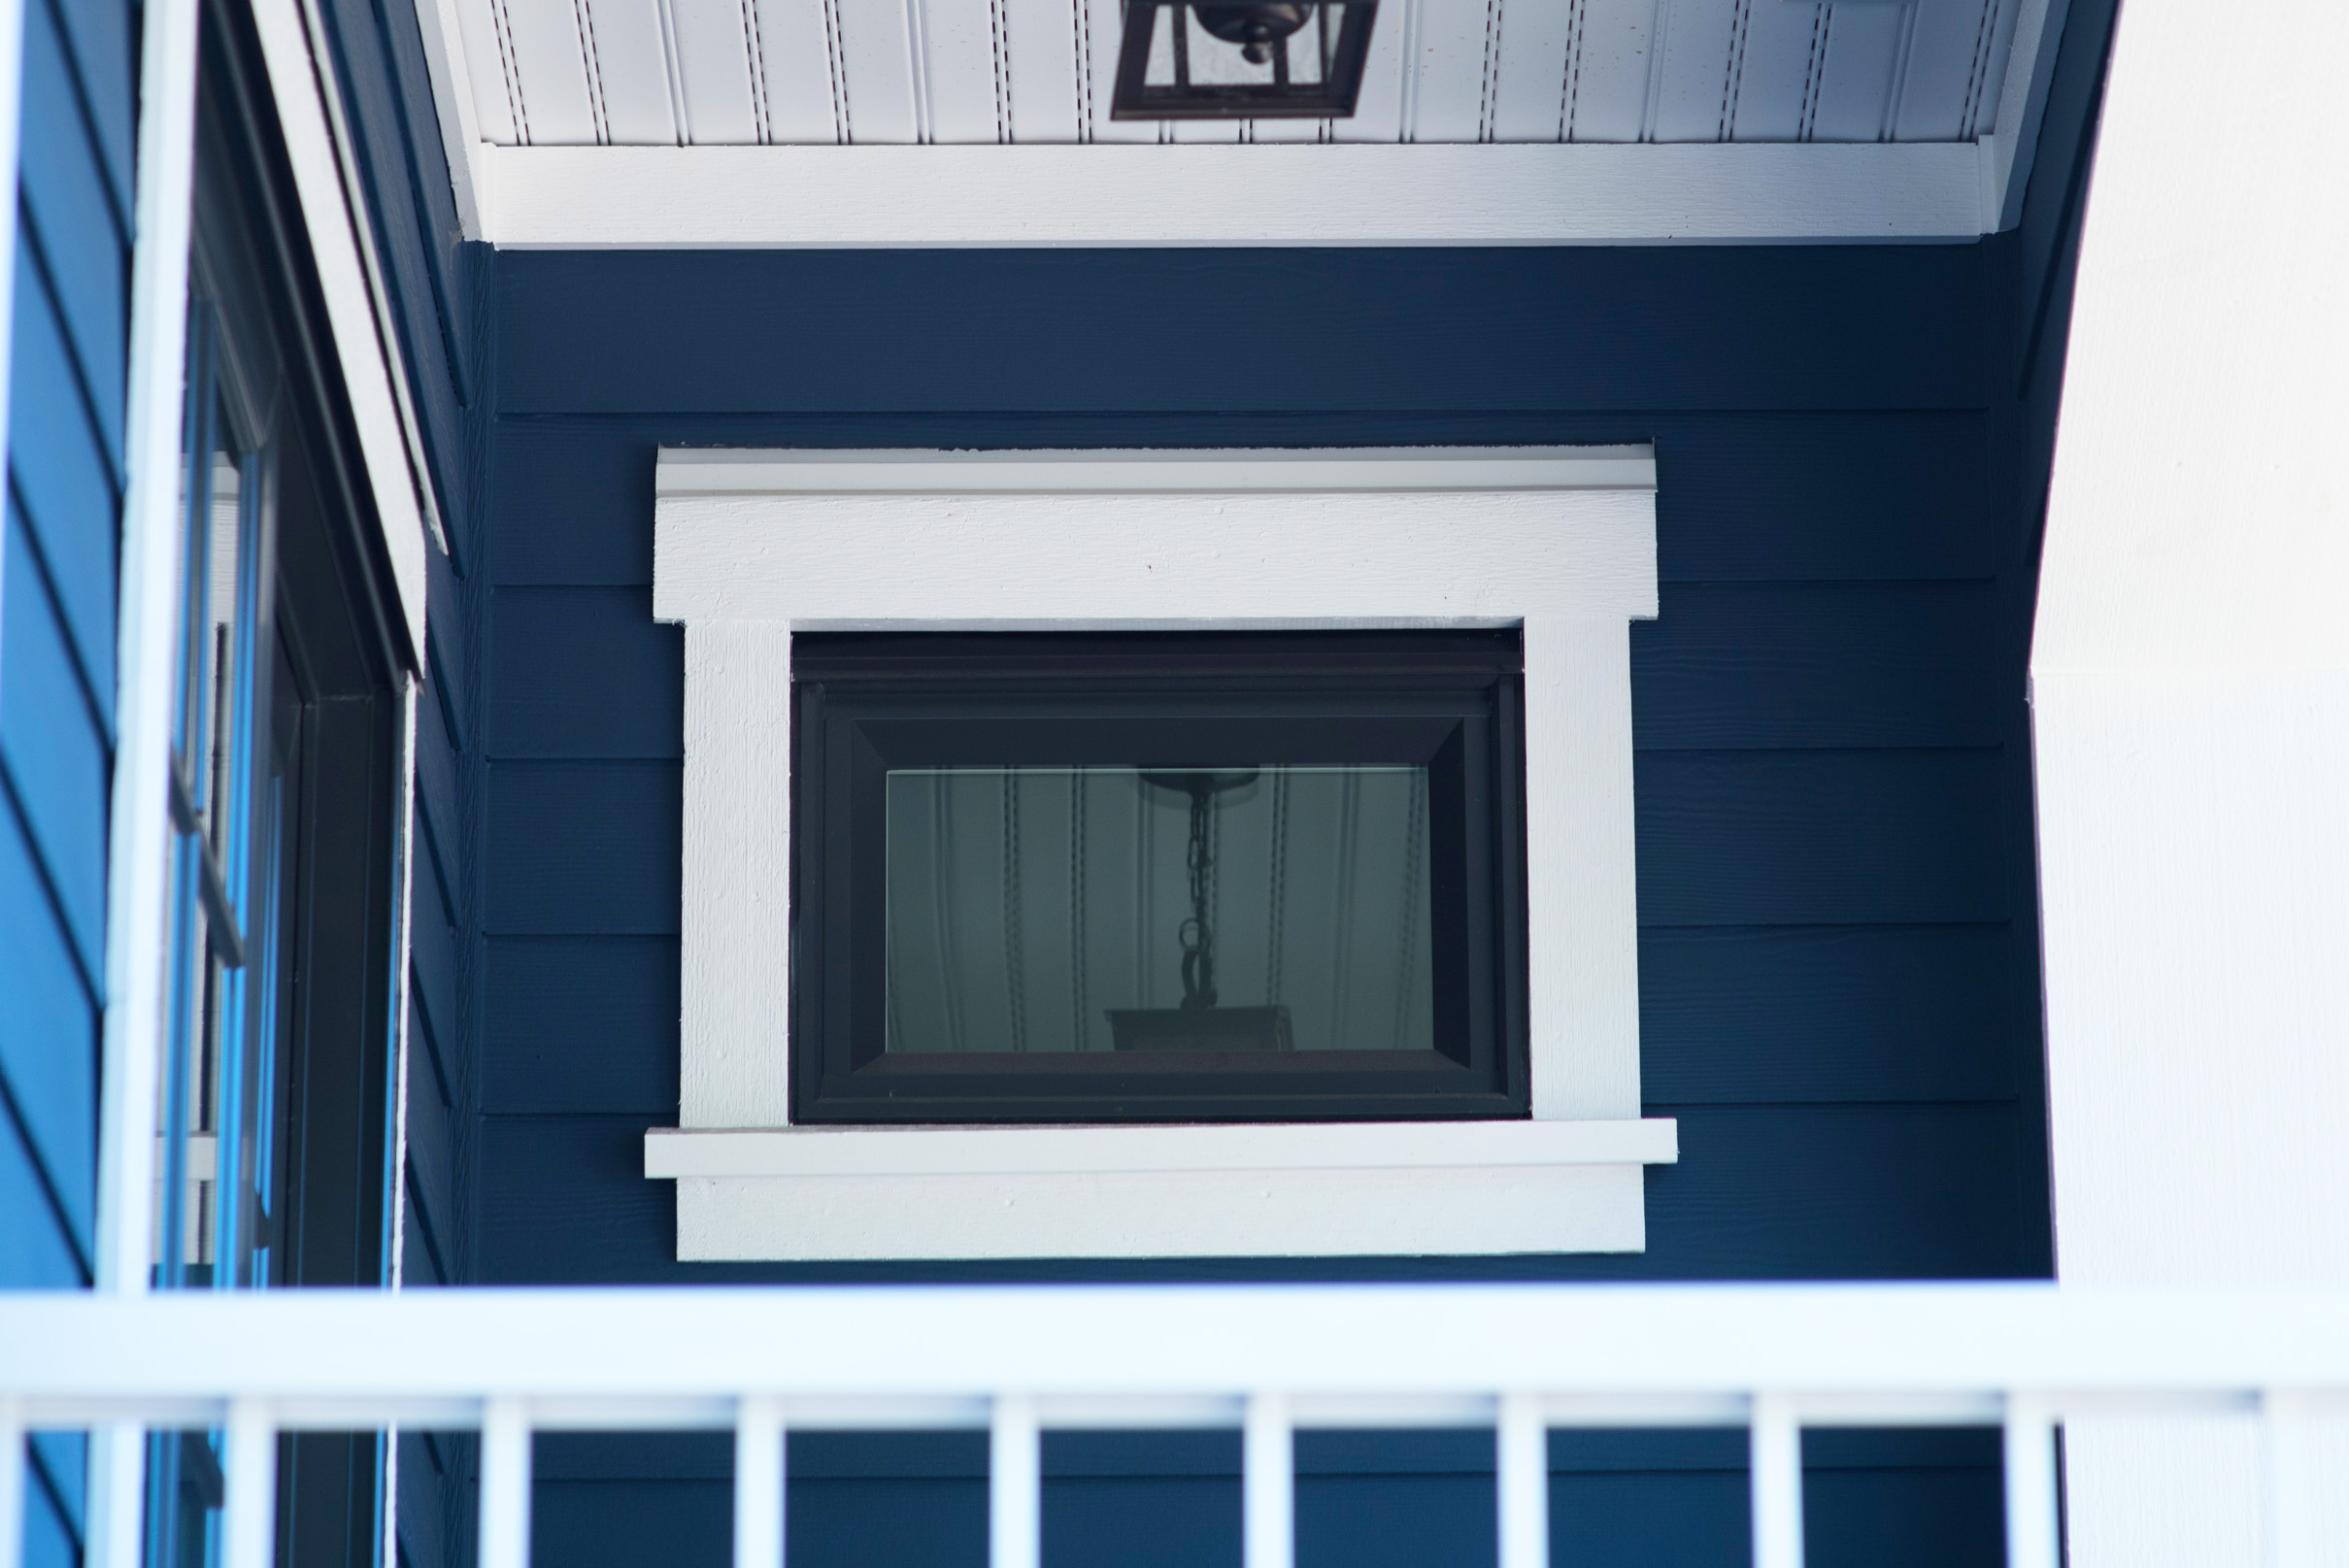 Awning Windows - West Coast Windows